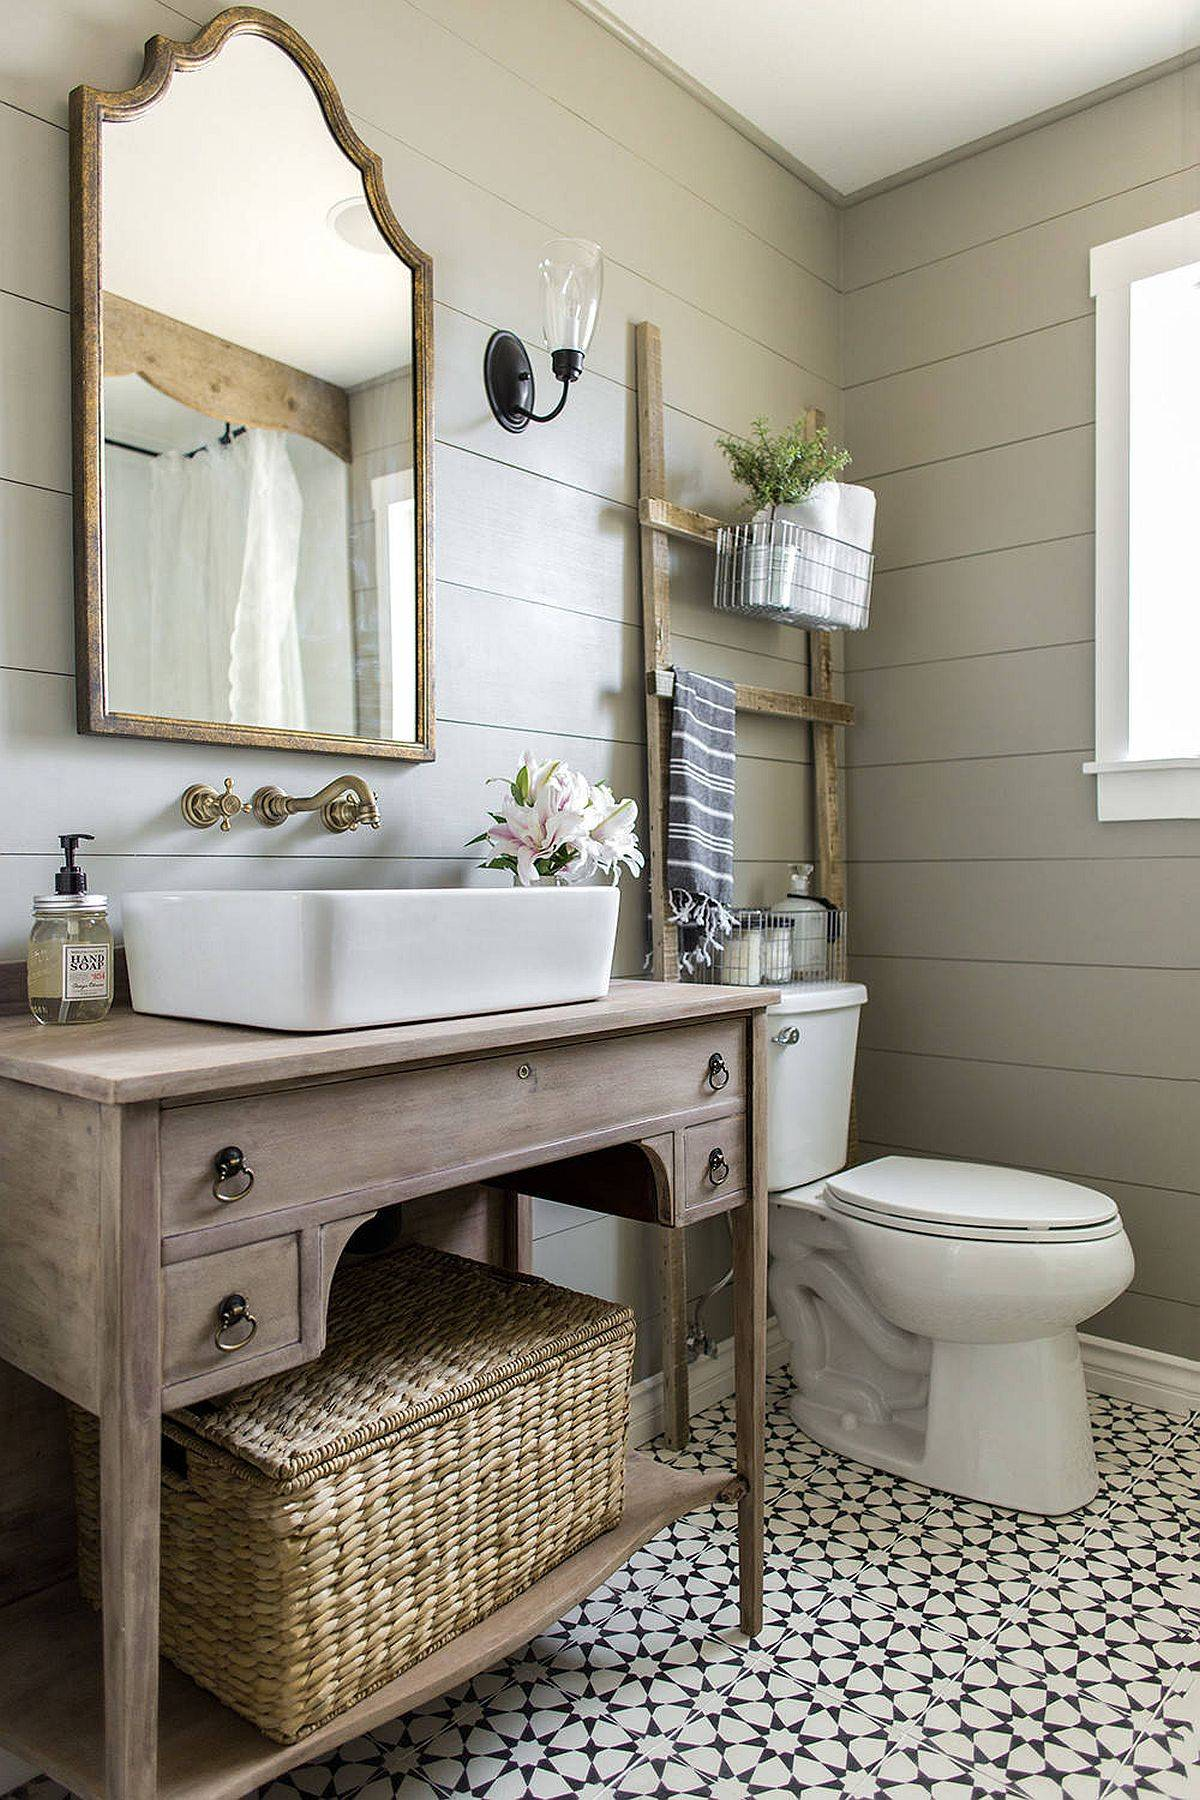 Wooden vanity, mirror frame and patterned tiles usher in farmhouse style